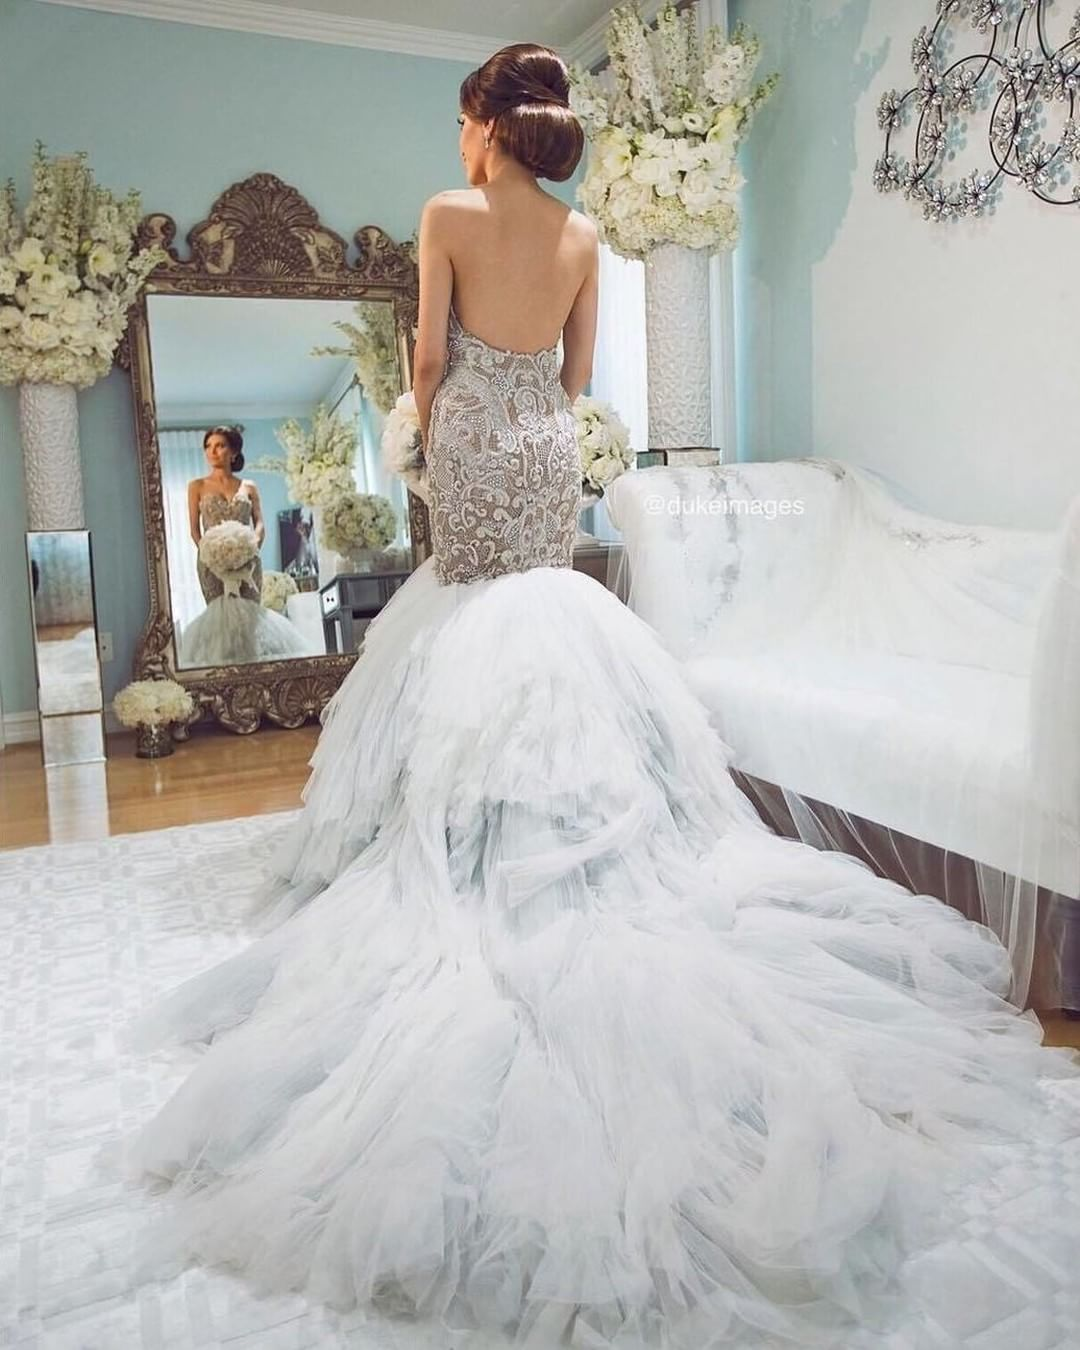 Wedding Dress : Such a beautiful wedding dress by @jatoncouture! We ...